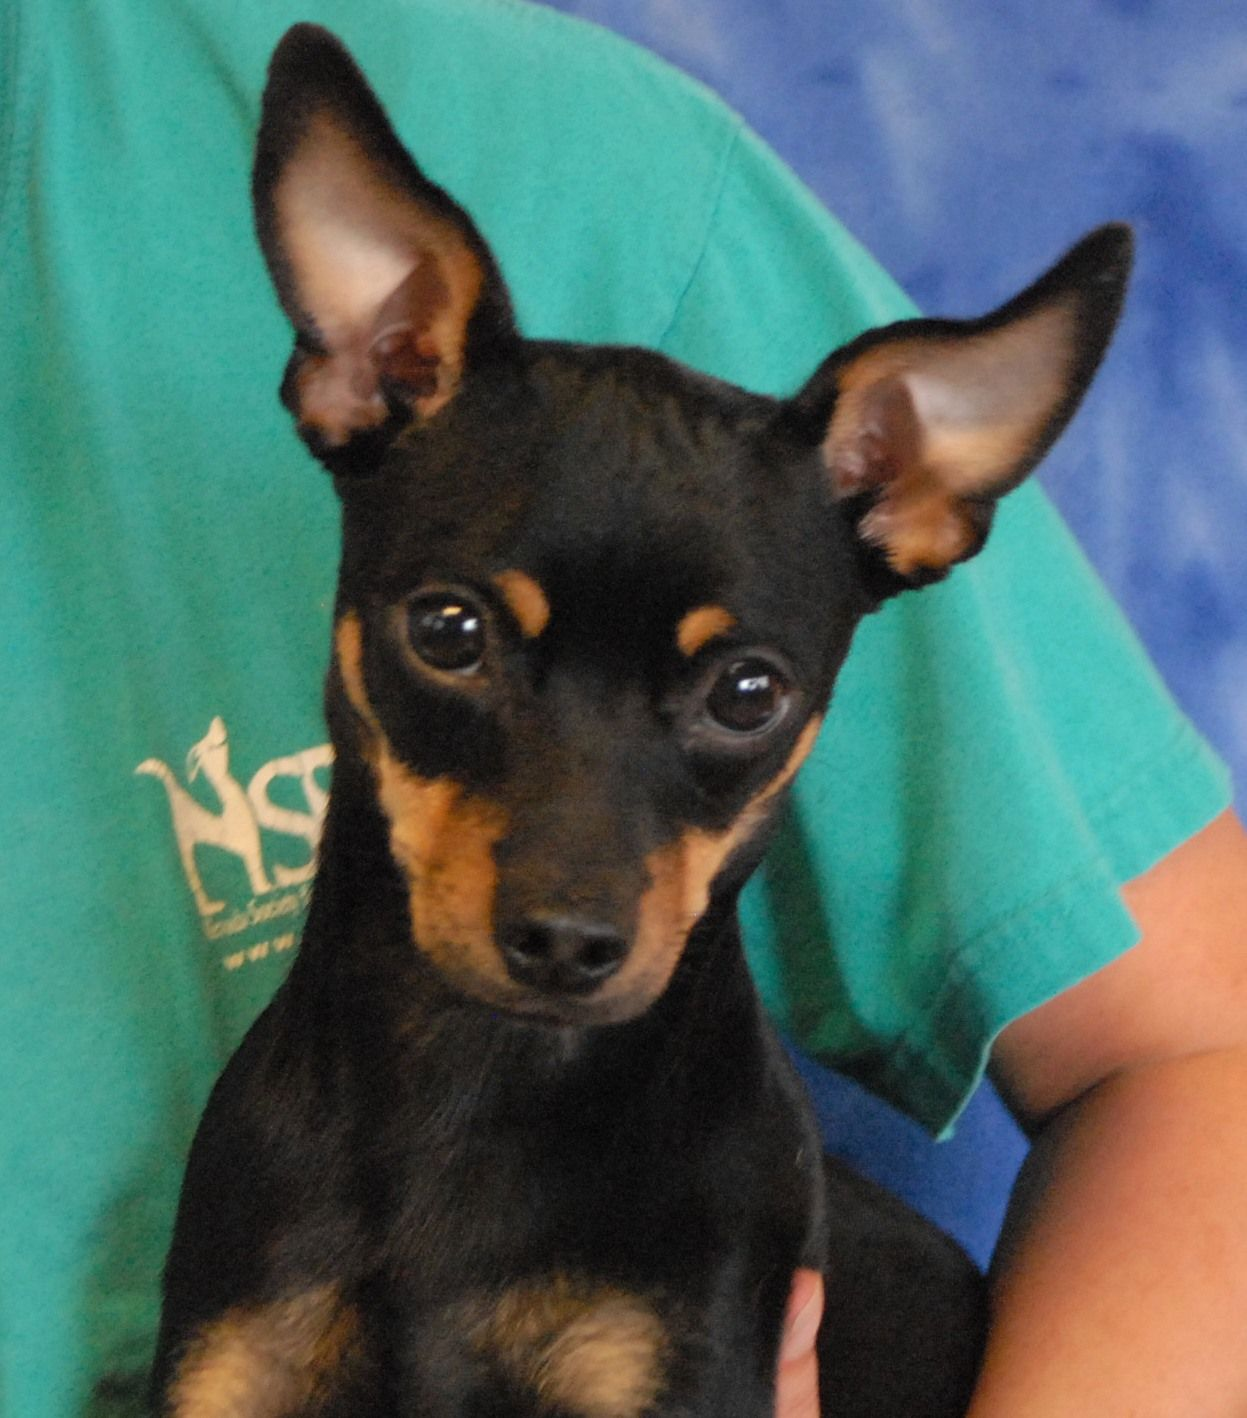 Thad Is A Tiny Demure Youngster And A Bit Shy But Talk To Him Sweetly And His Tail Wags Excitedly And His Miniature Pinscher Miniature Pinscher Mix Pinscher